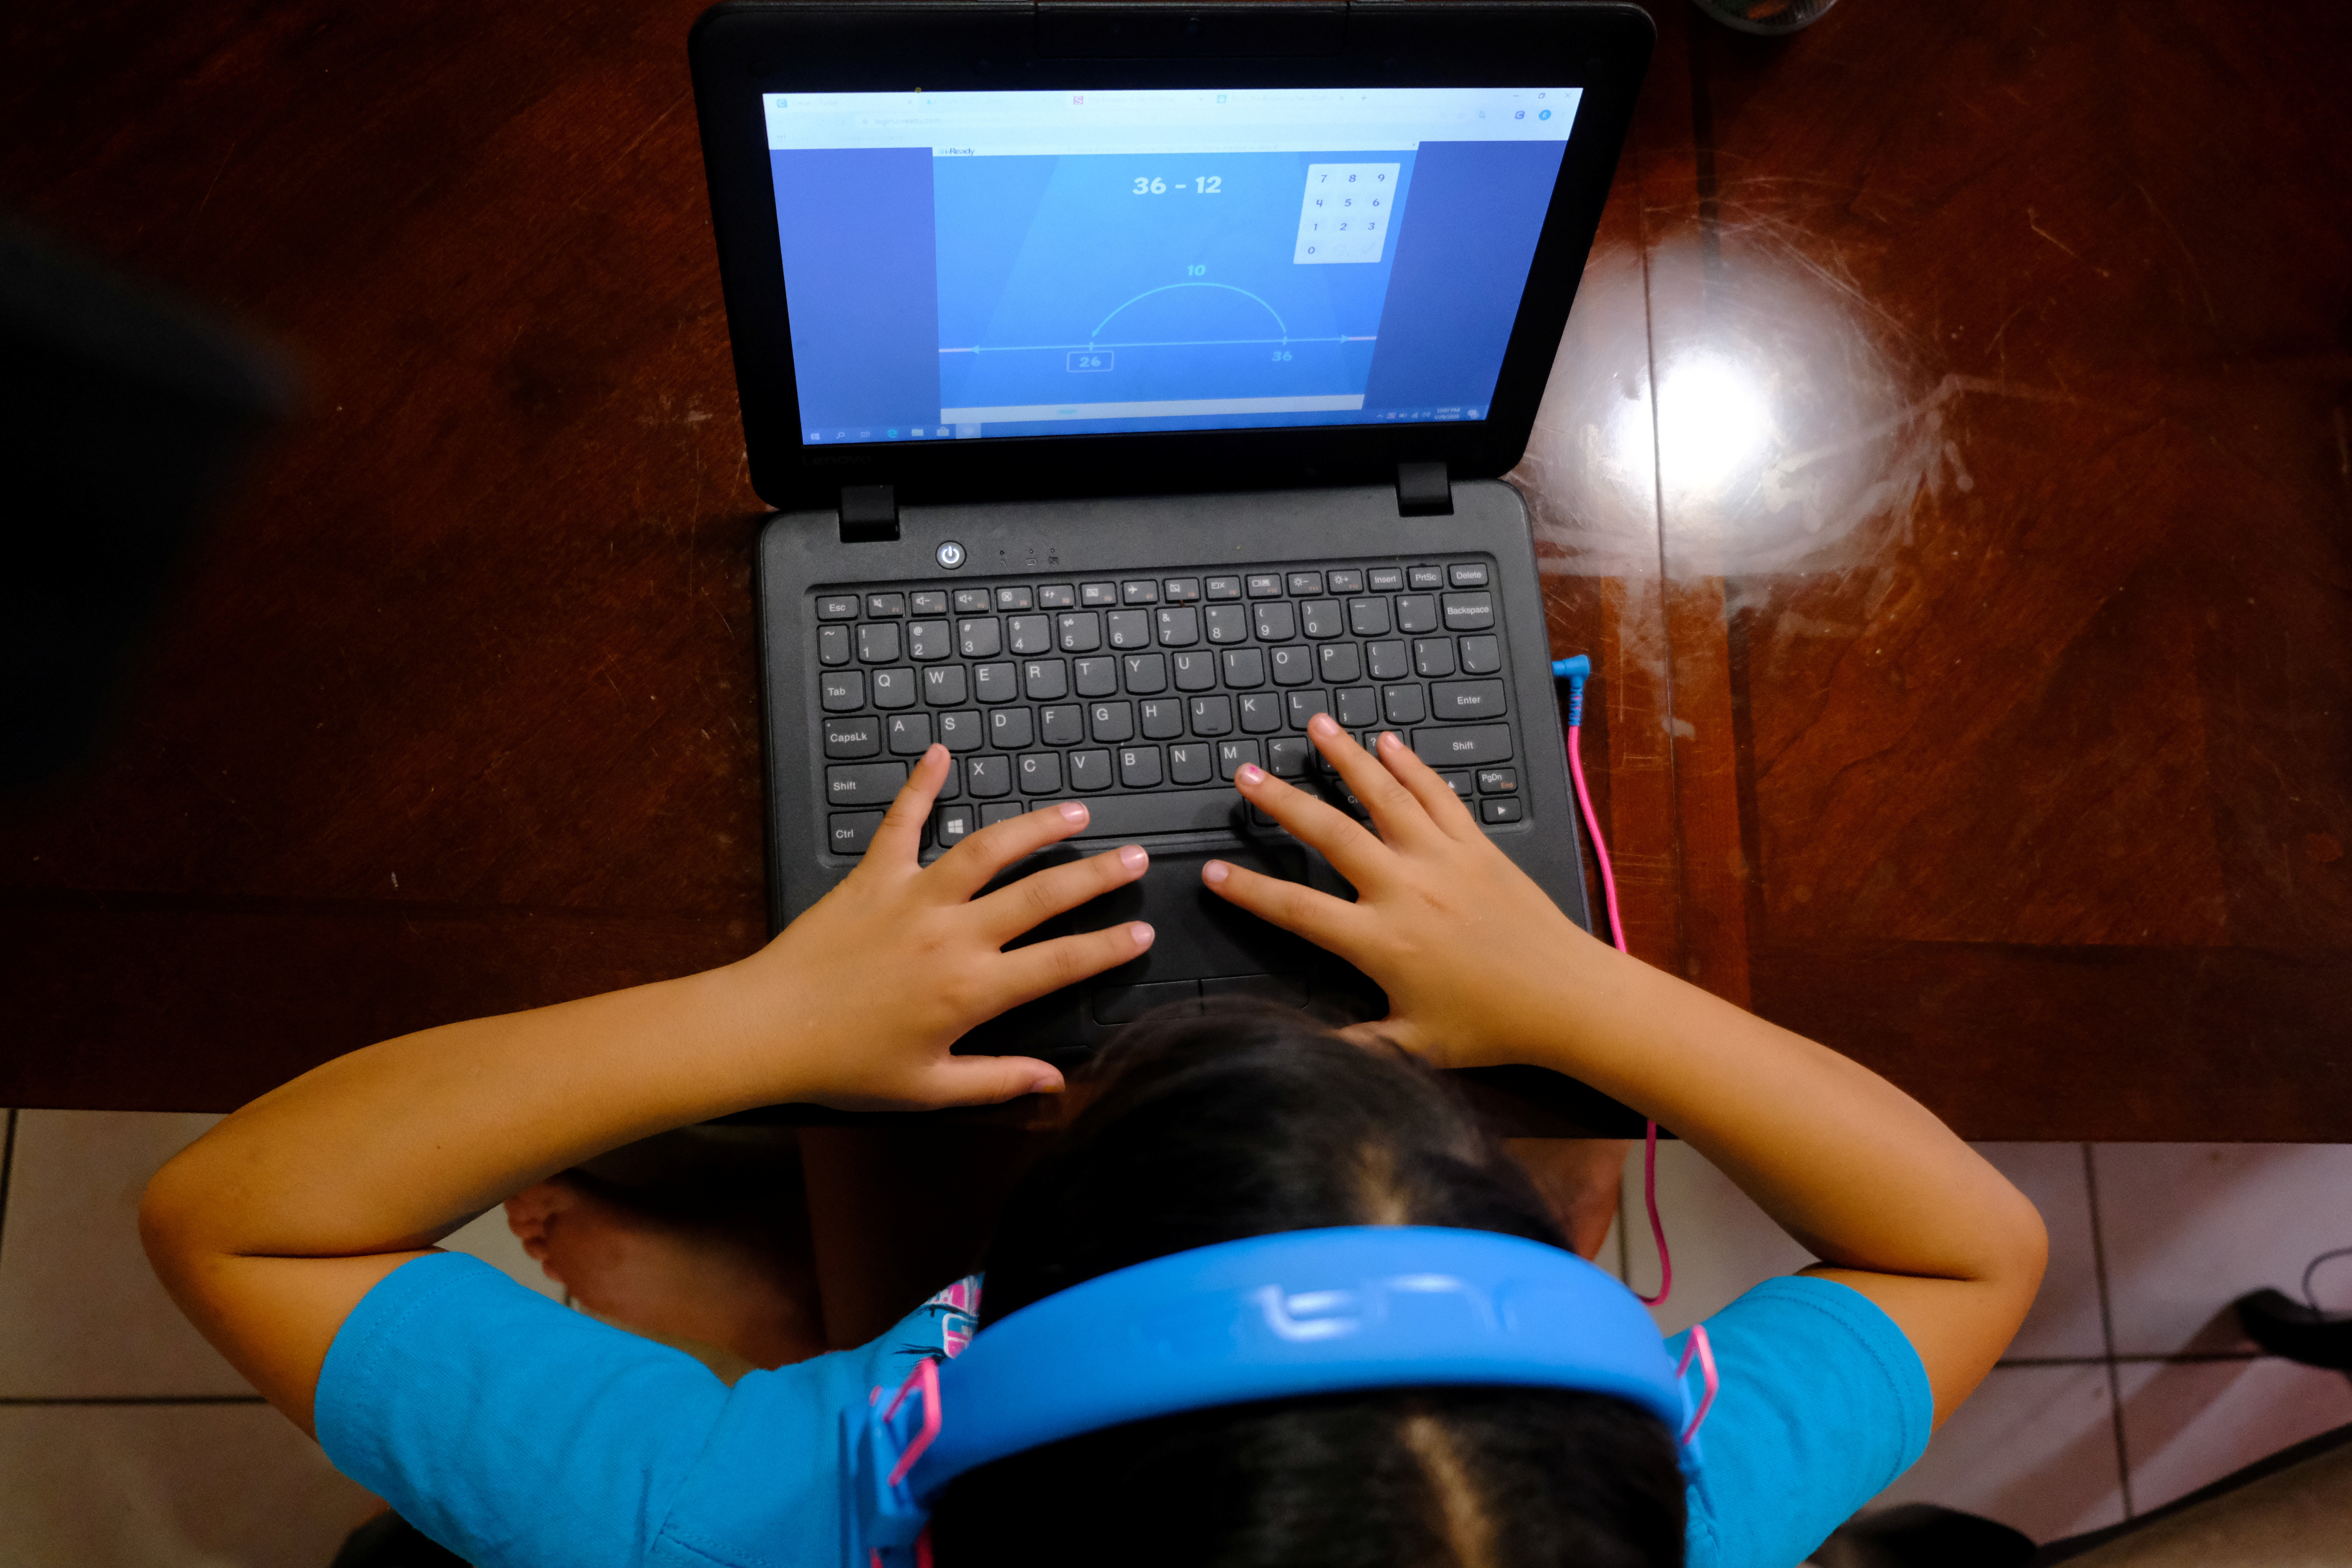 Hazeline Panditaratne completes her math assessments  from her computer in Broward County, Florida, U.S. May 29, 2020. Picture taken May 29, 2020.  REUTERS/Maria Alejandra Cardona - RC211H9CF49Y